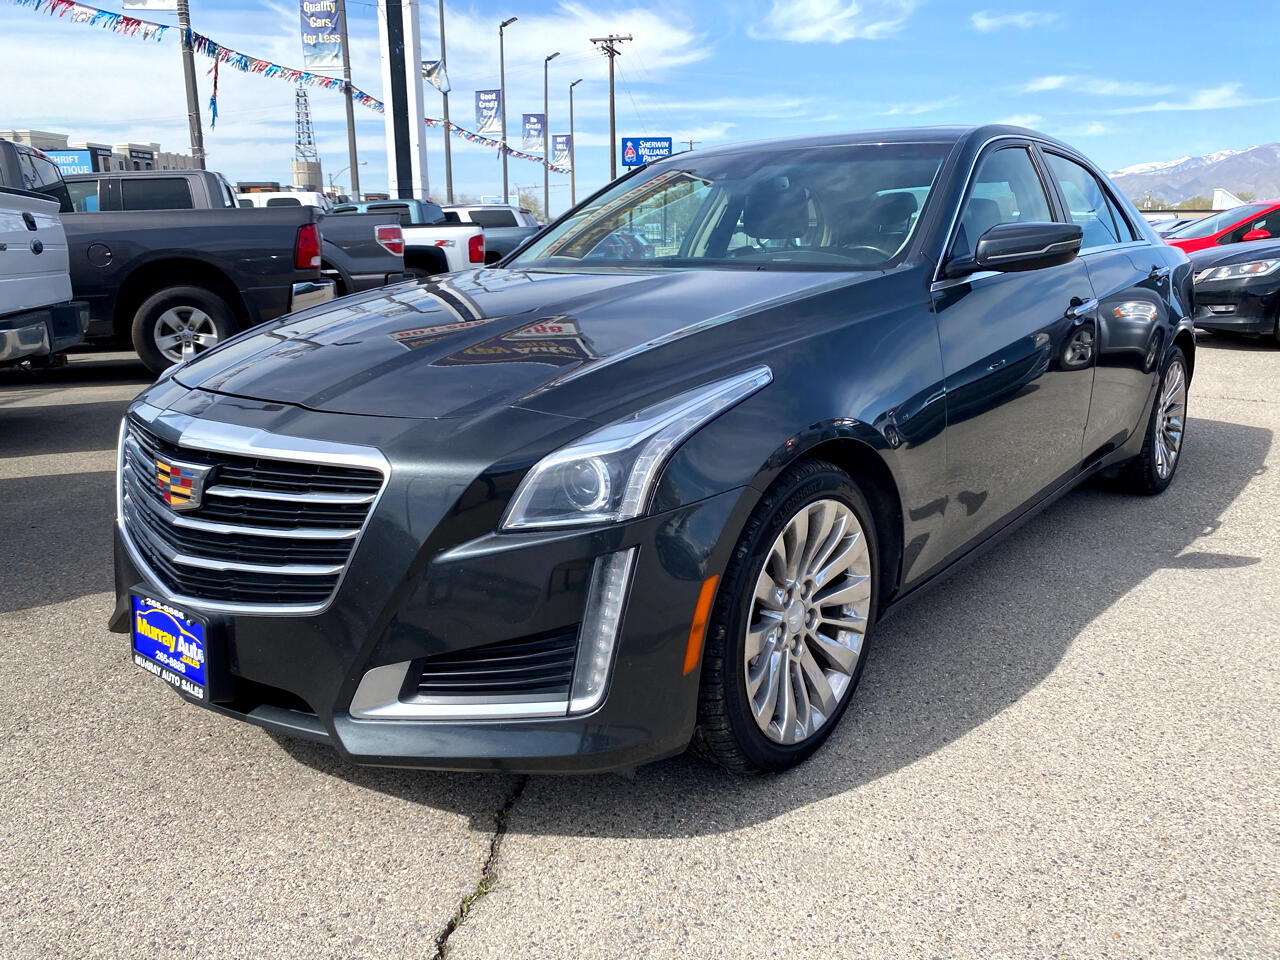 Cadillac CTS Sedan 4dr Sdn 2.0L Turbo Luxury AWD 2015